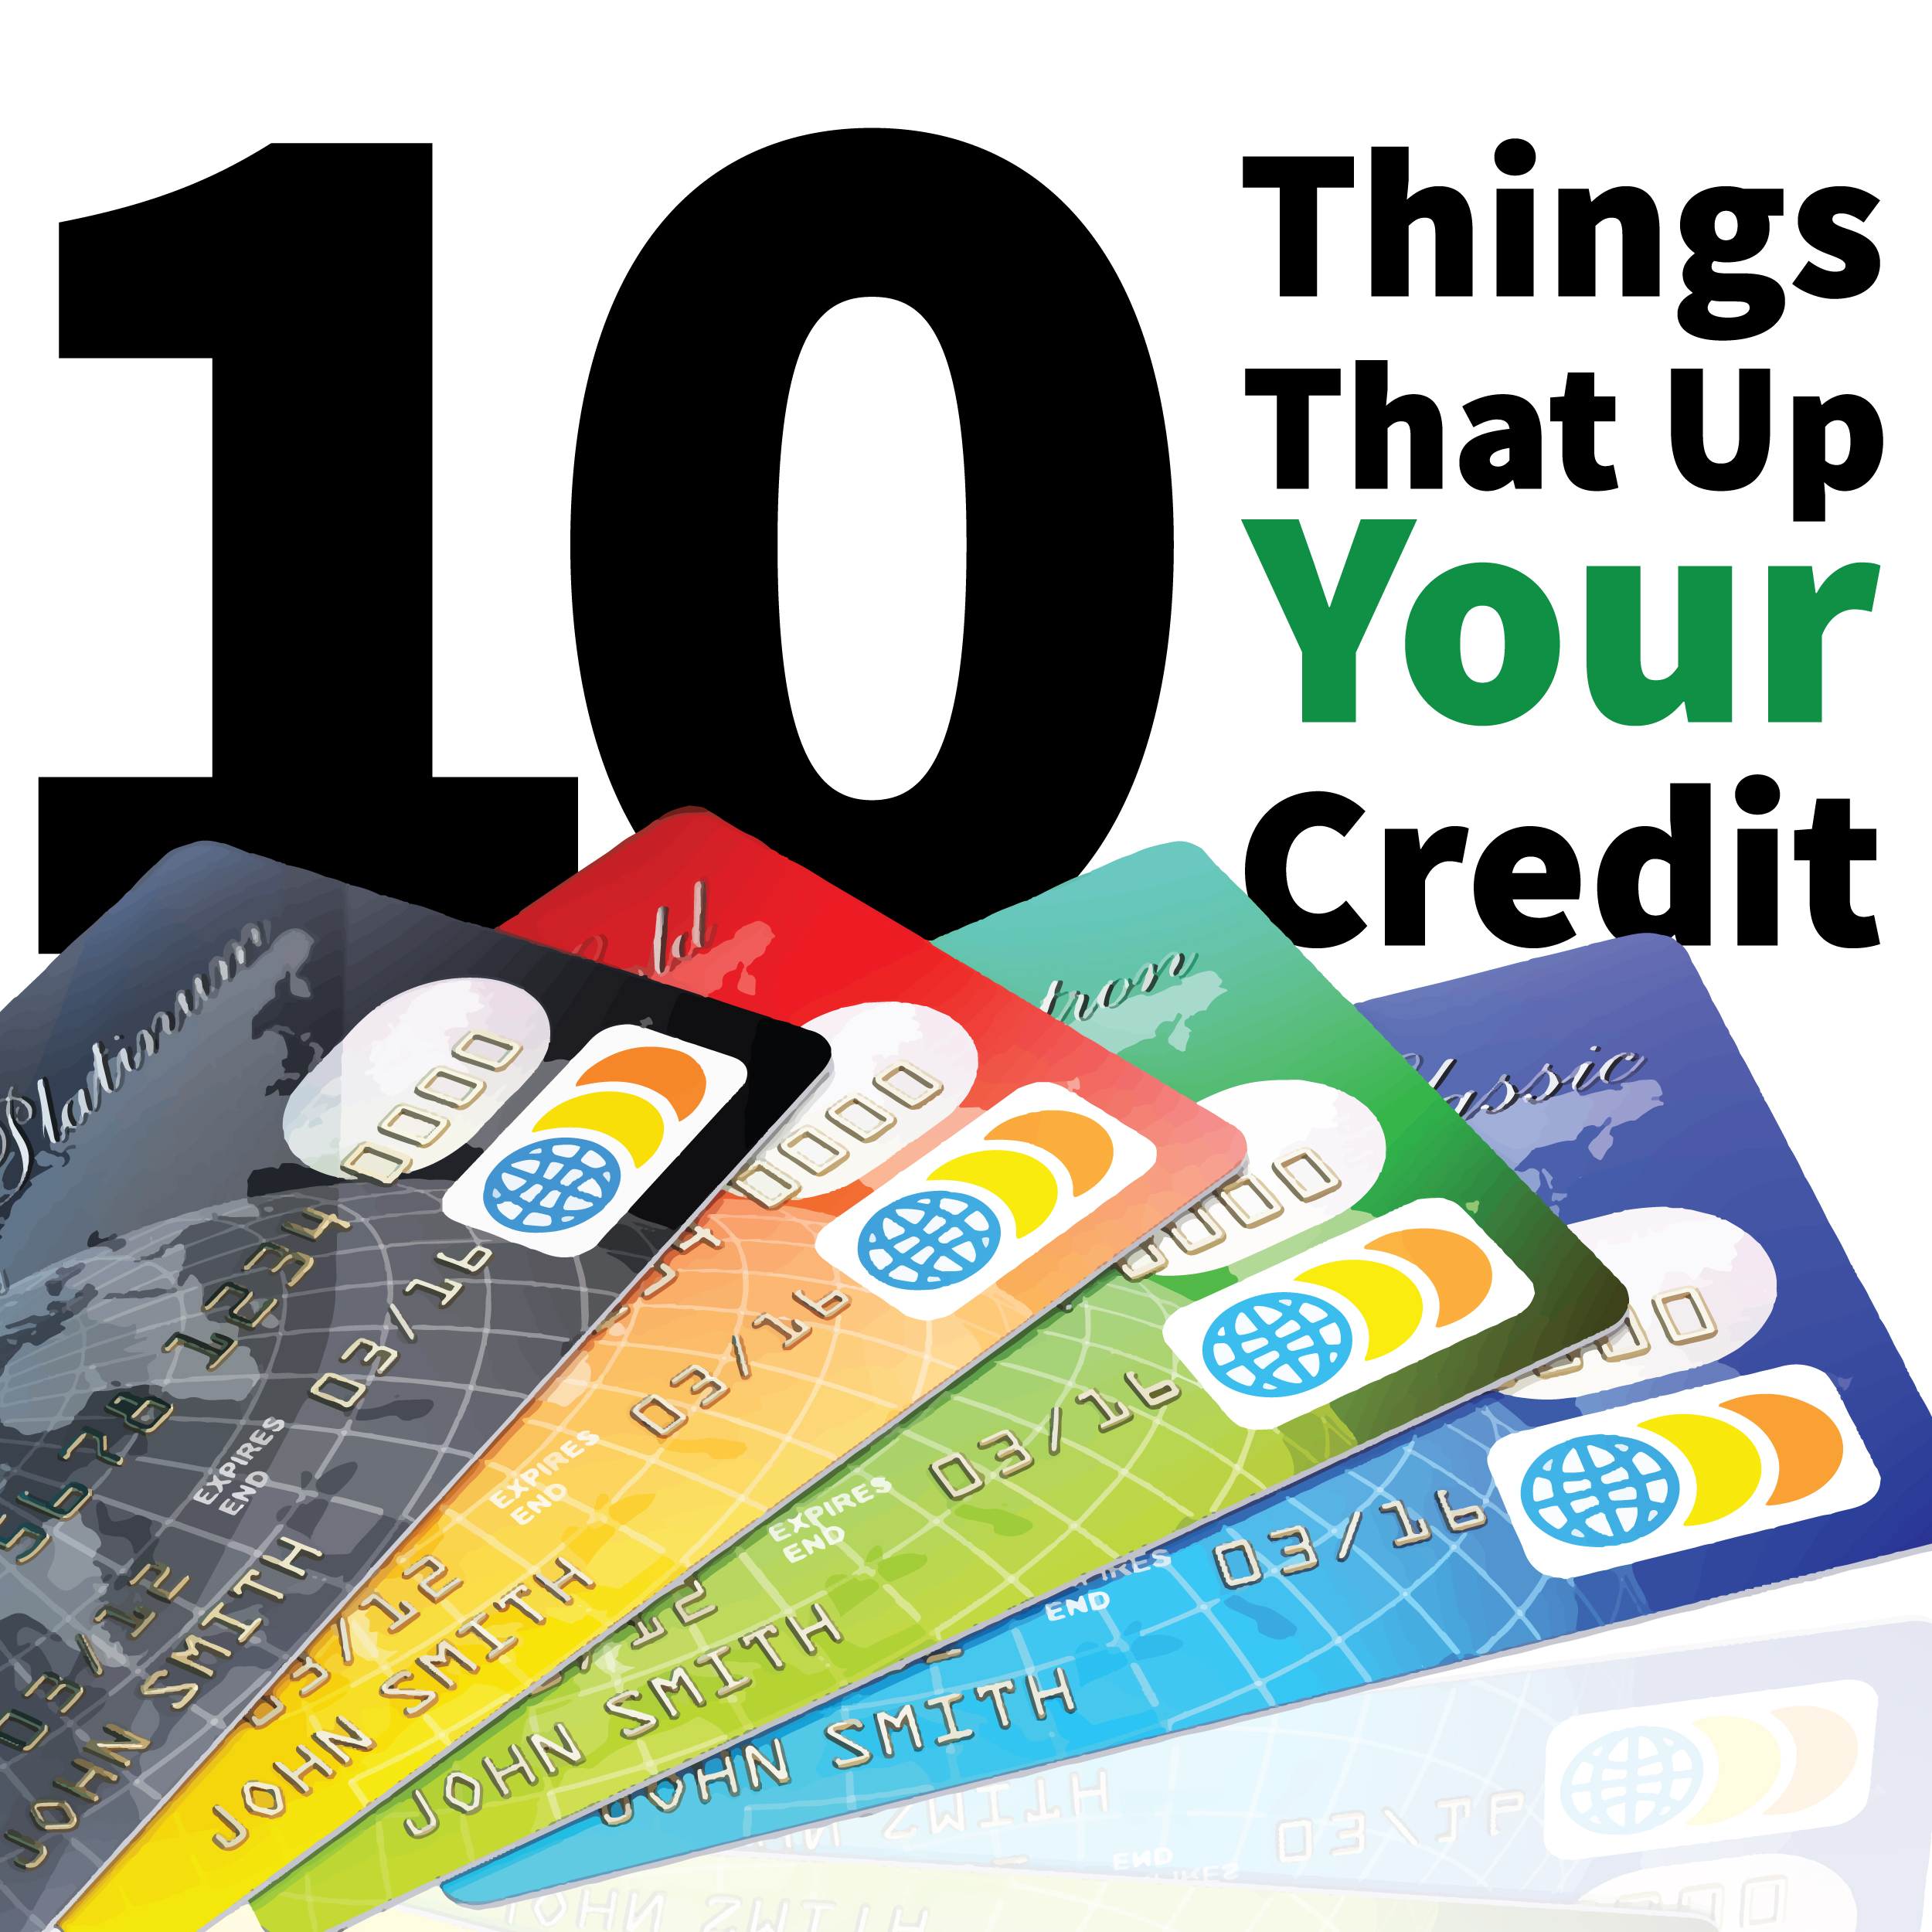 10thingsthatupyourcredit-01